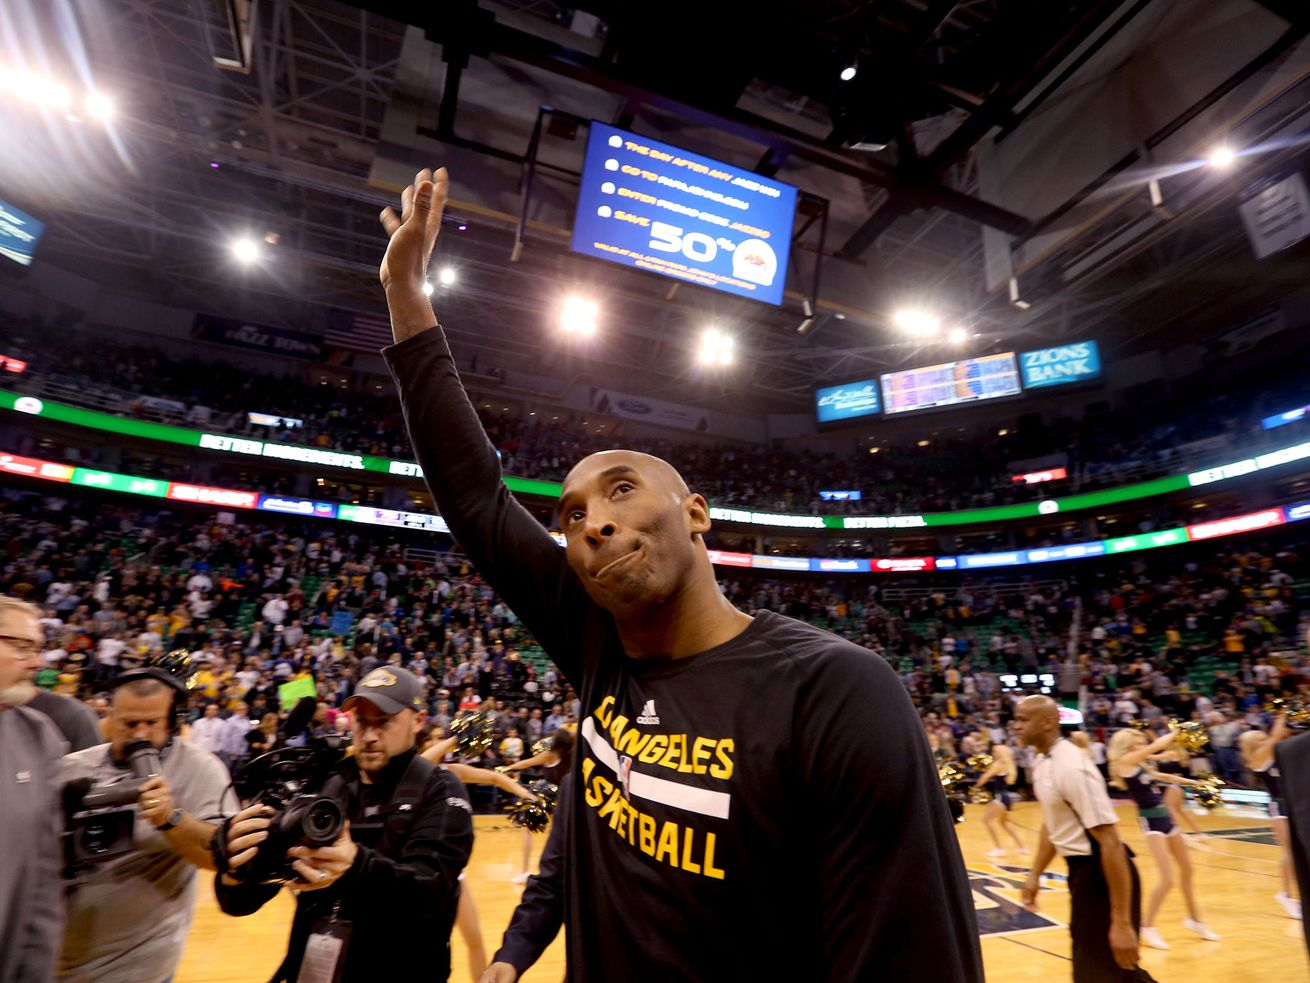 Los Angeles Lakers star Kobe Bryant exits the Vivint Smart Home Arena after the Lakers lost to the Utah Jazz in Salt Lake City on Monday, March 28, 2016.